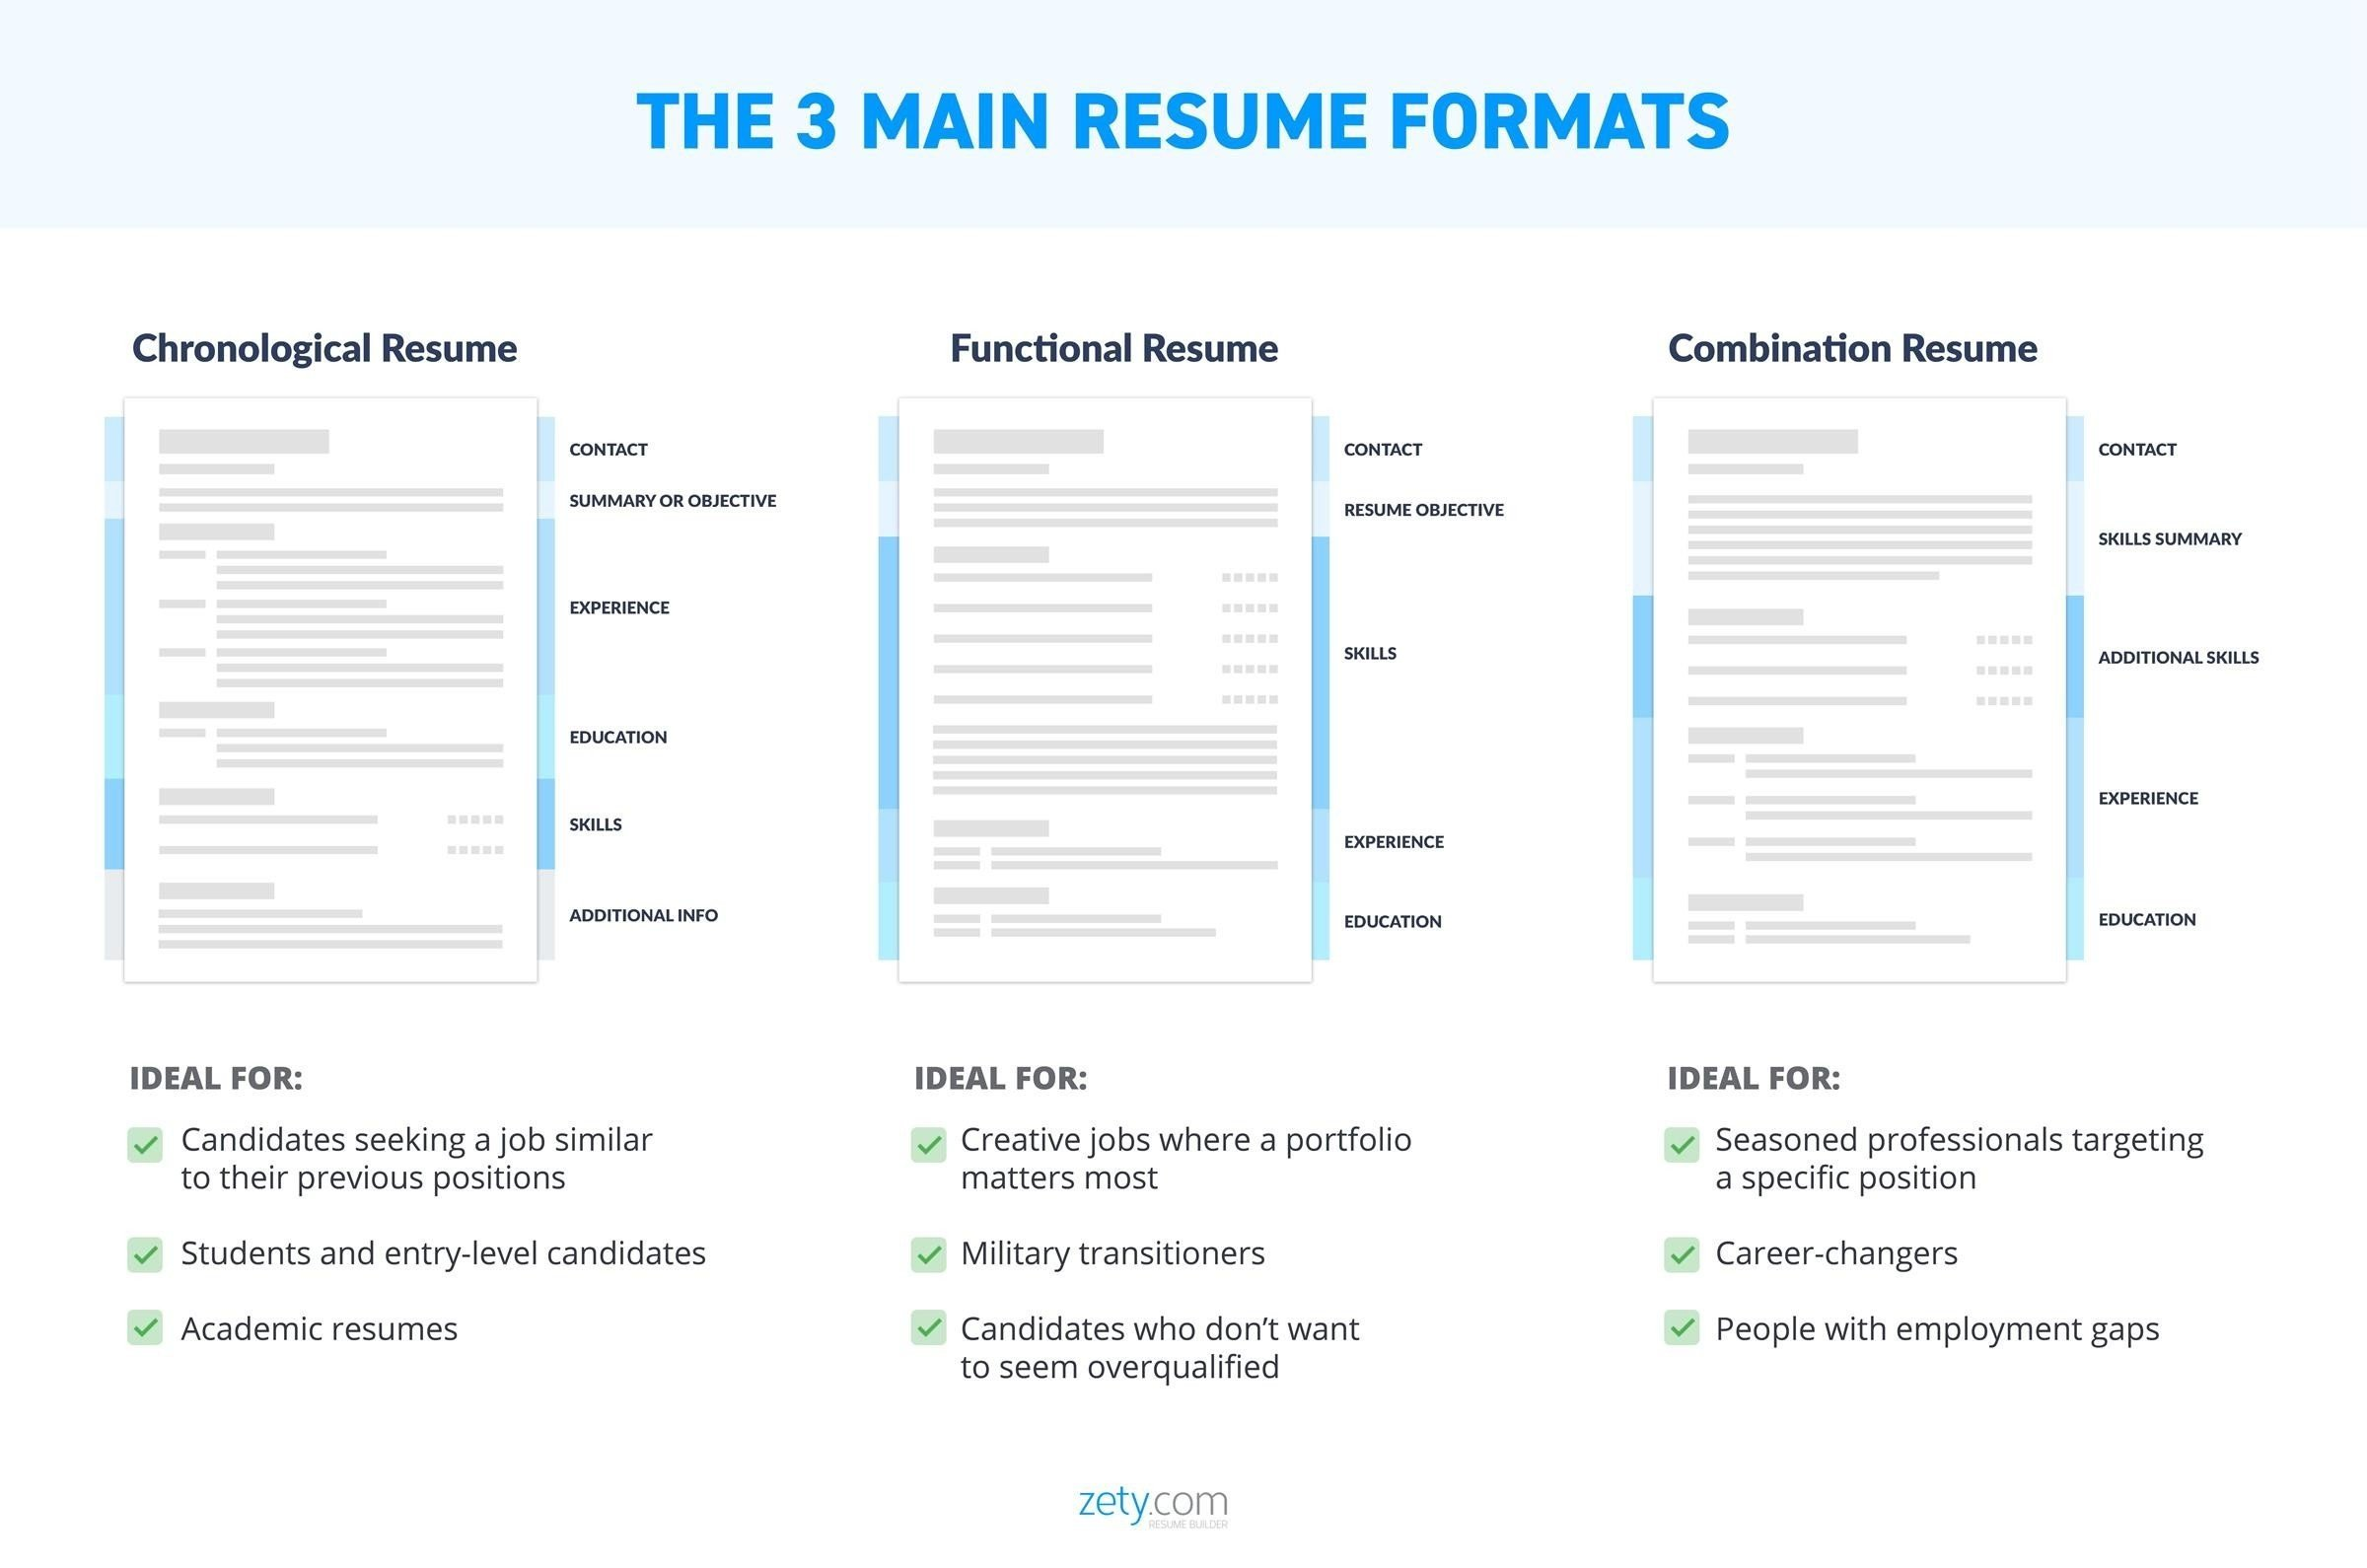 best resume format professional samples chronological template formats maintenance Resume Chronological Resume Template 2021